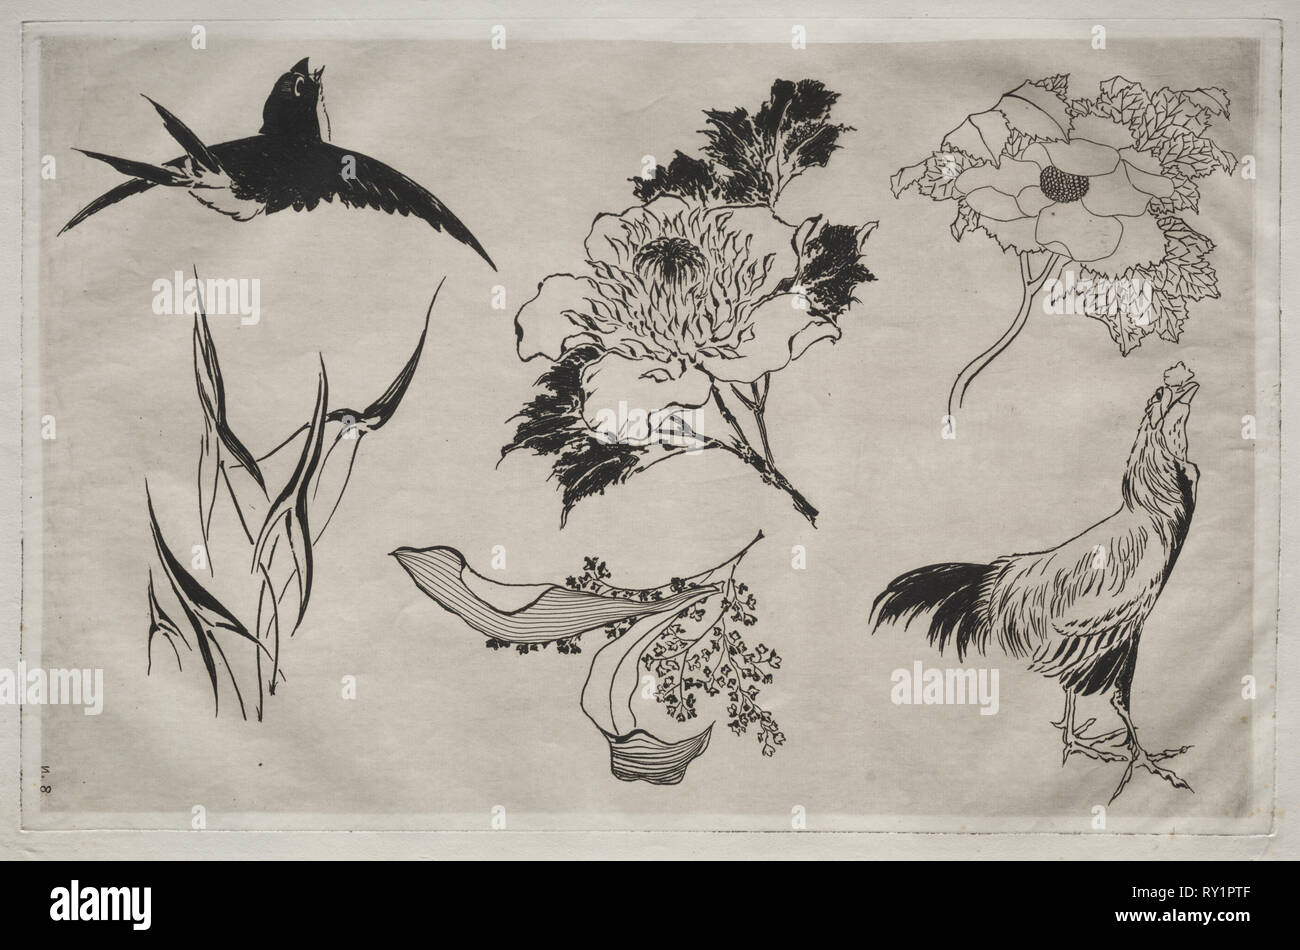 Dinner Service (Rousseau service): Swallow, Rooster and Flowers (no. 8), 1866. Félix Bracquemond (French, 1833-1914). Etching; sheet: 35.8 x 48.2 cm (14 1/8 x 19 in.); platemark: 27.5 x 42.6 cm (10 13/16 x 16 3/4 in Stock Photo